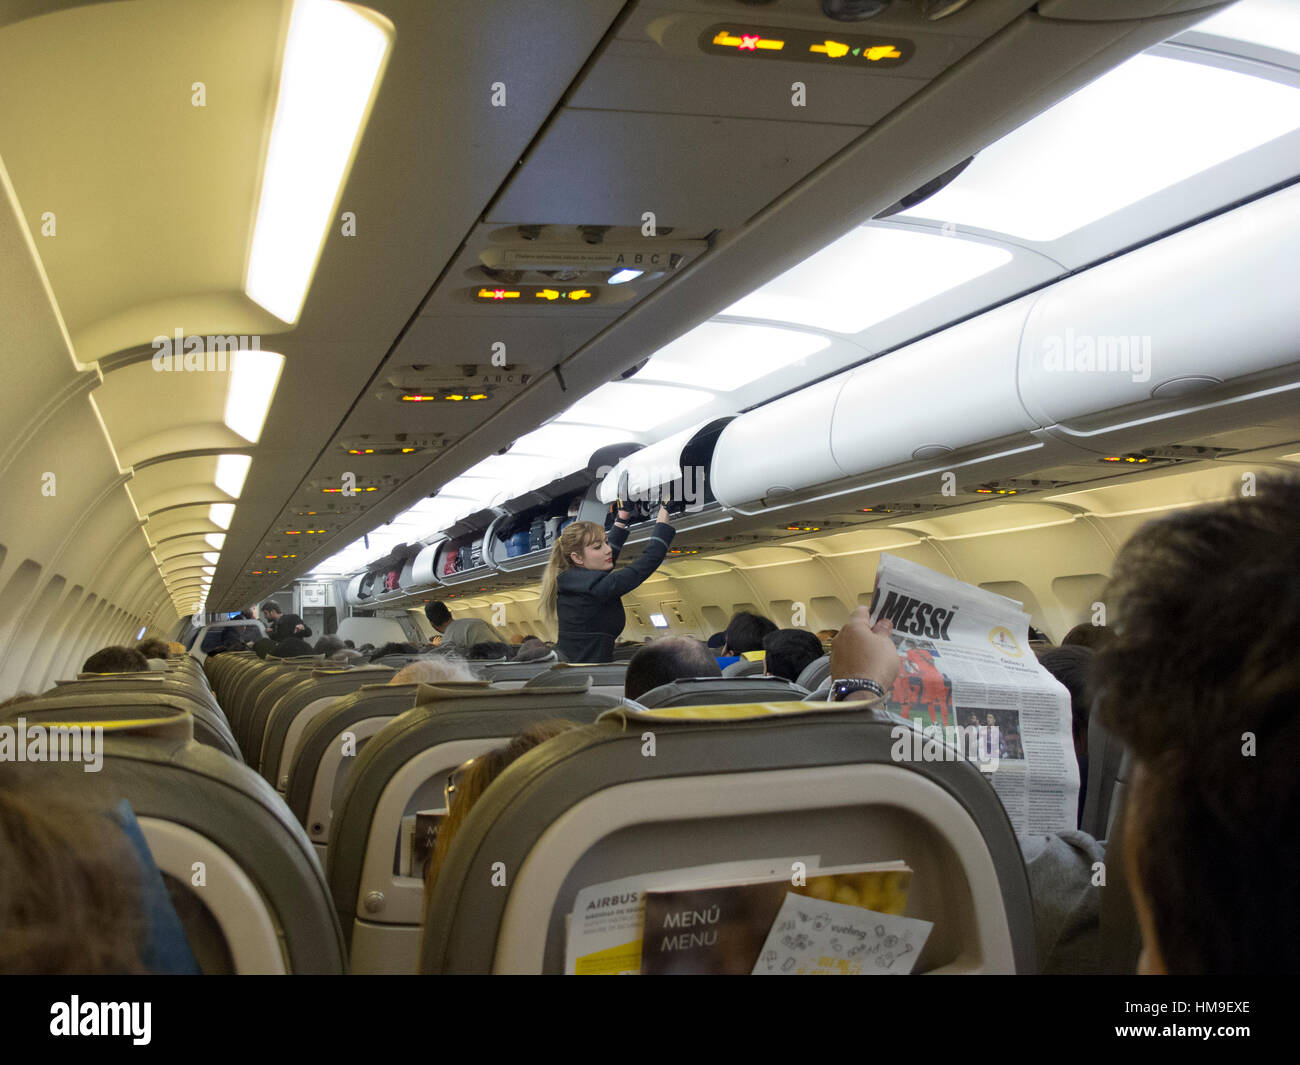 Aircraft interior scene, Barcelona airport, Vueling Airline flight departure boarding Stewardess carry-on luggage - Stock Image